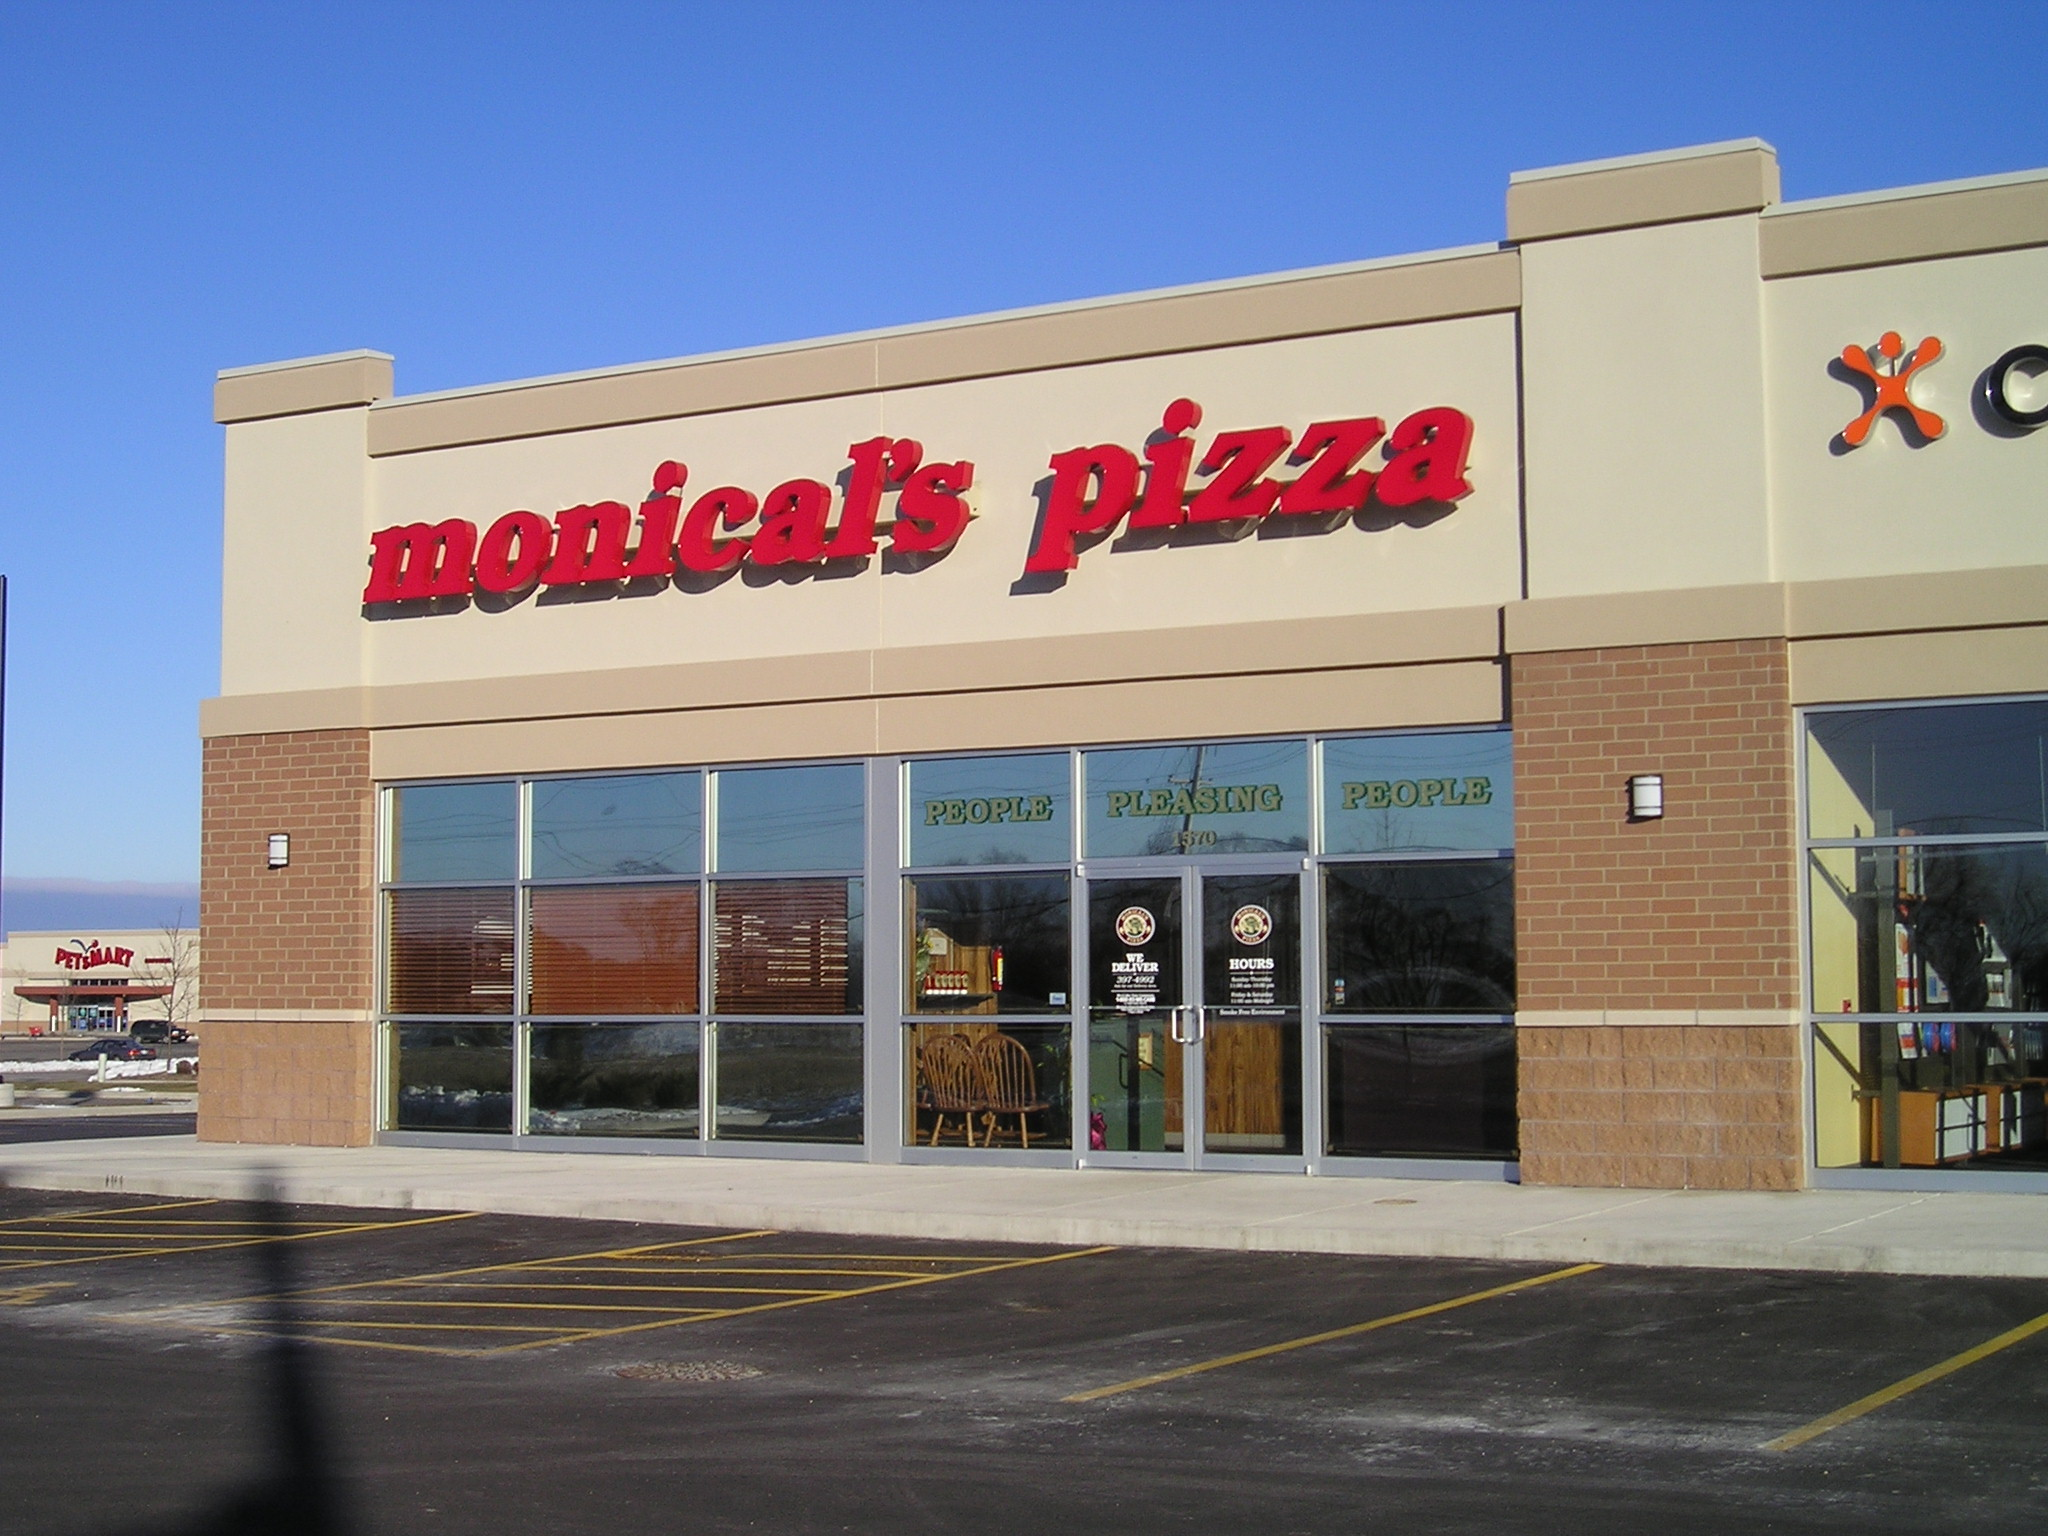 Restaurant - Monical's Pizza, Machesney Park, IL